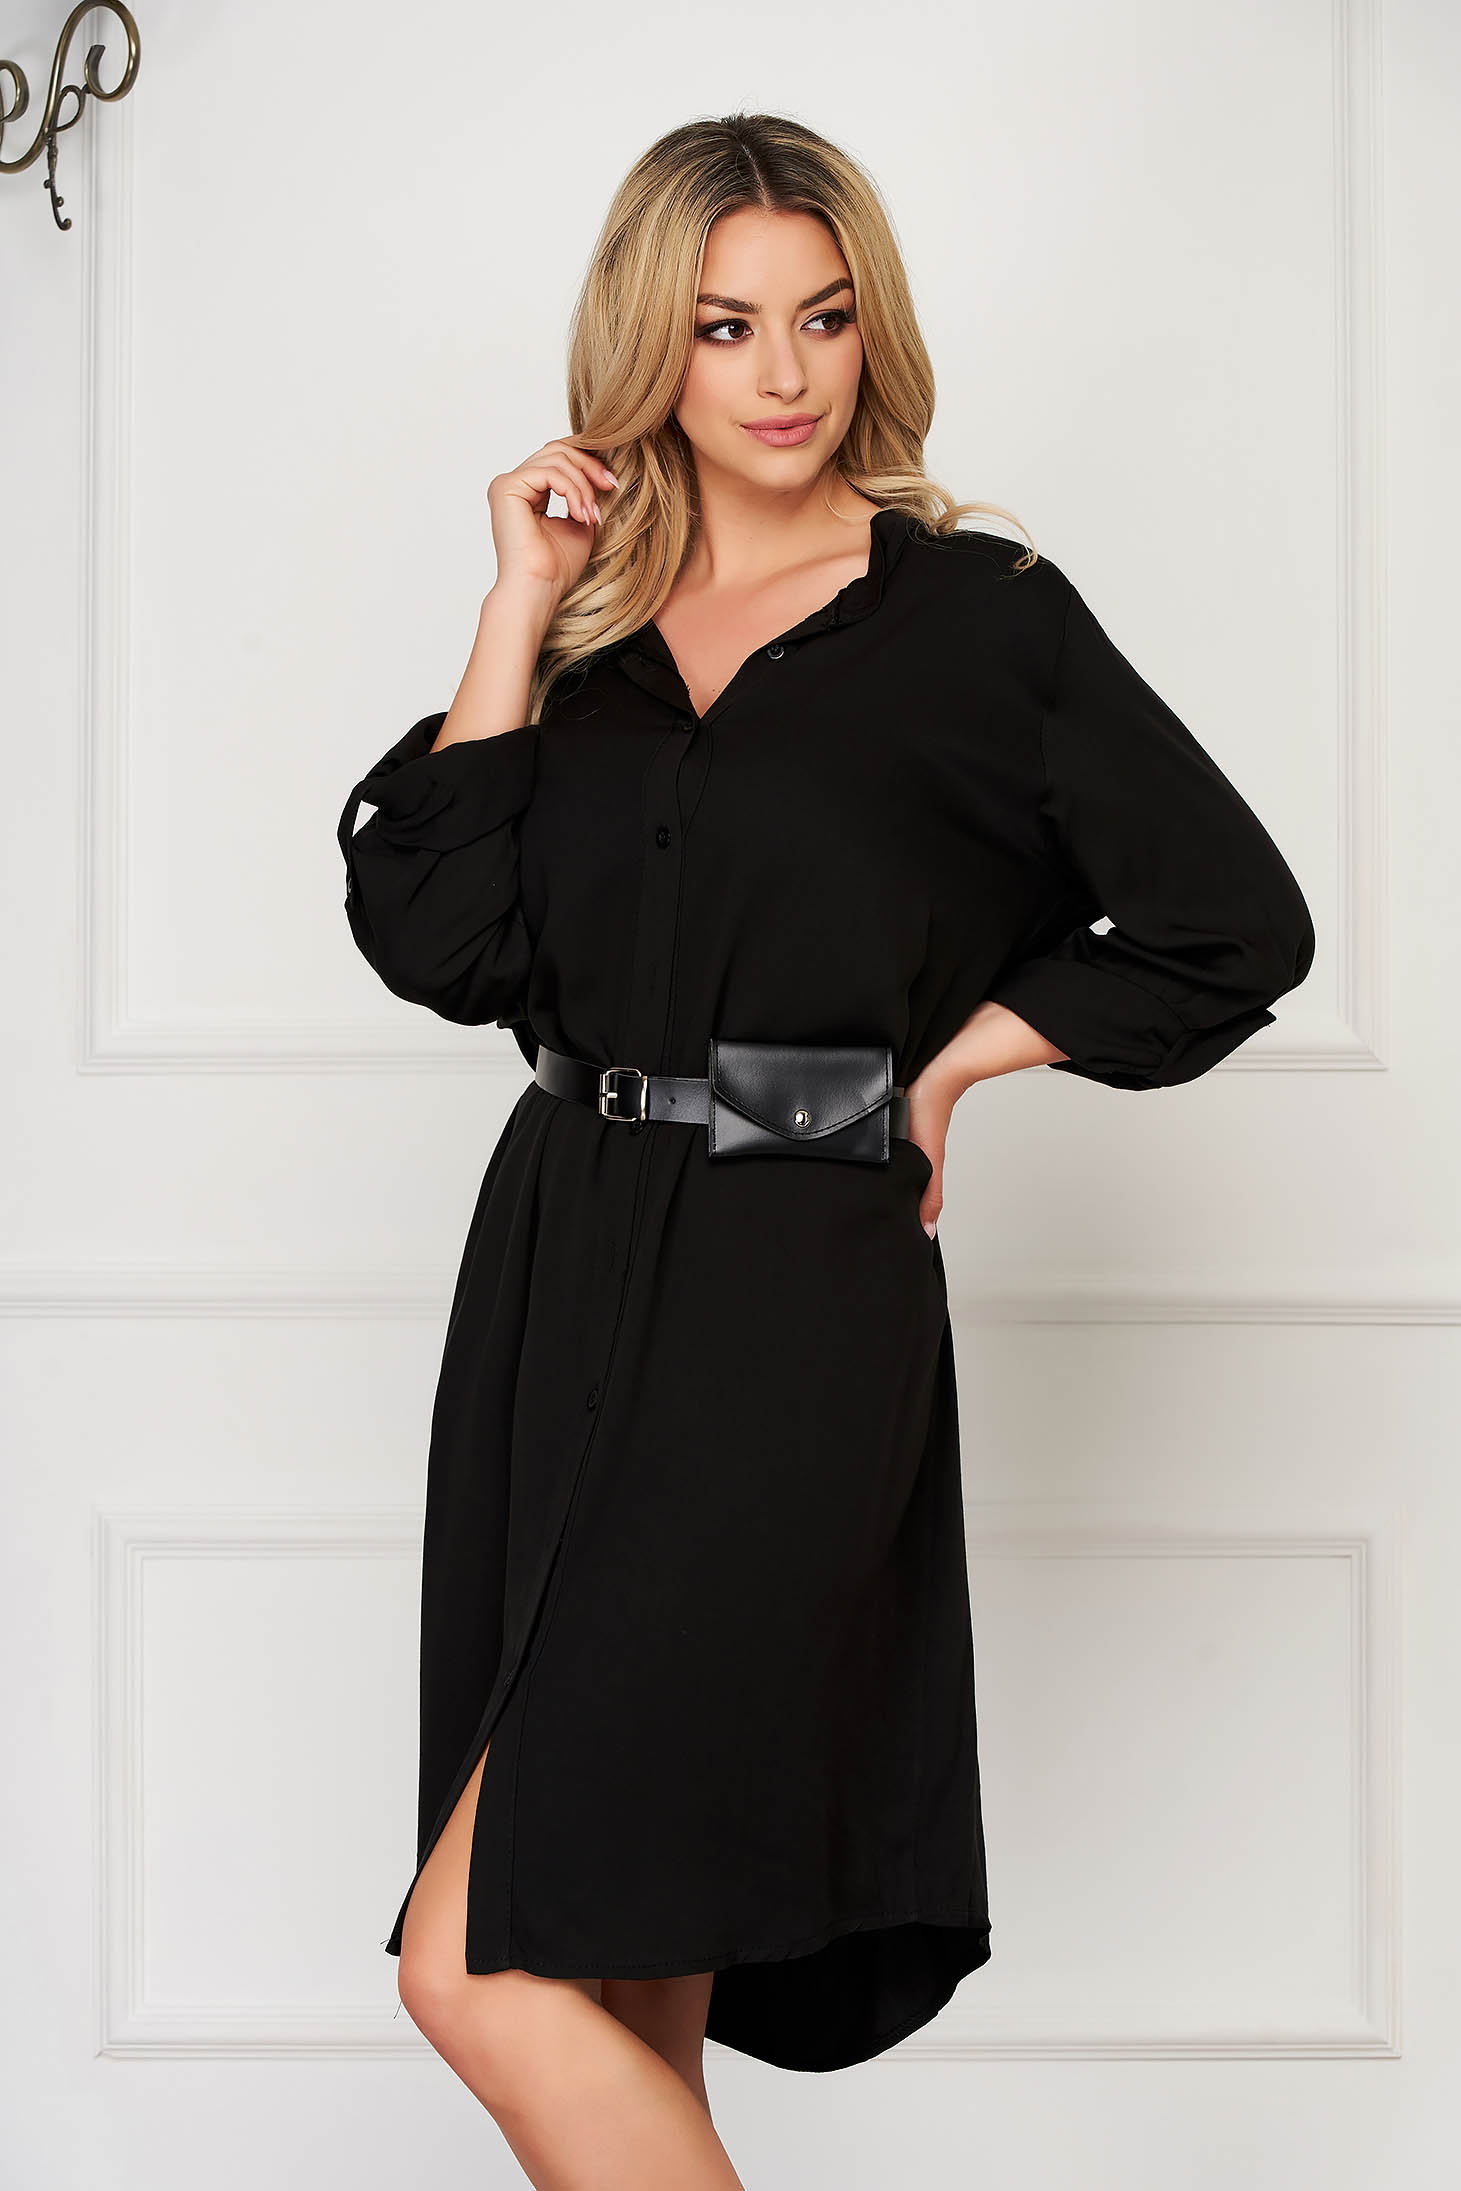 Black dress daily midi straight accessorized with belt faux leather belt